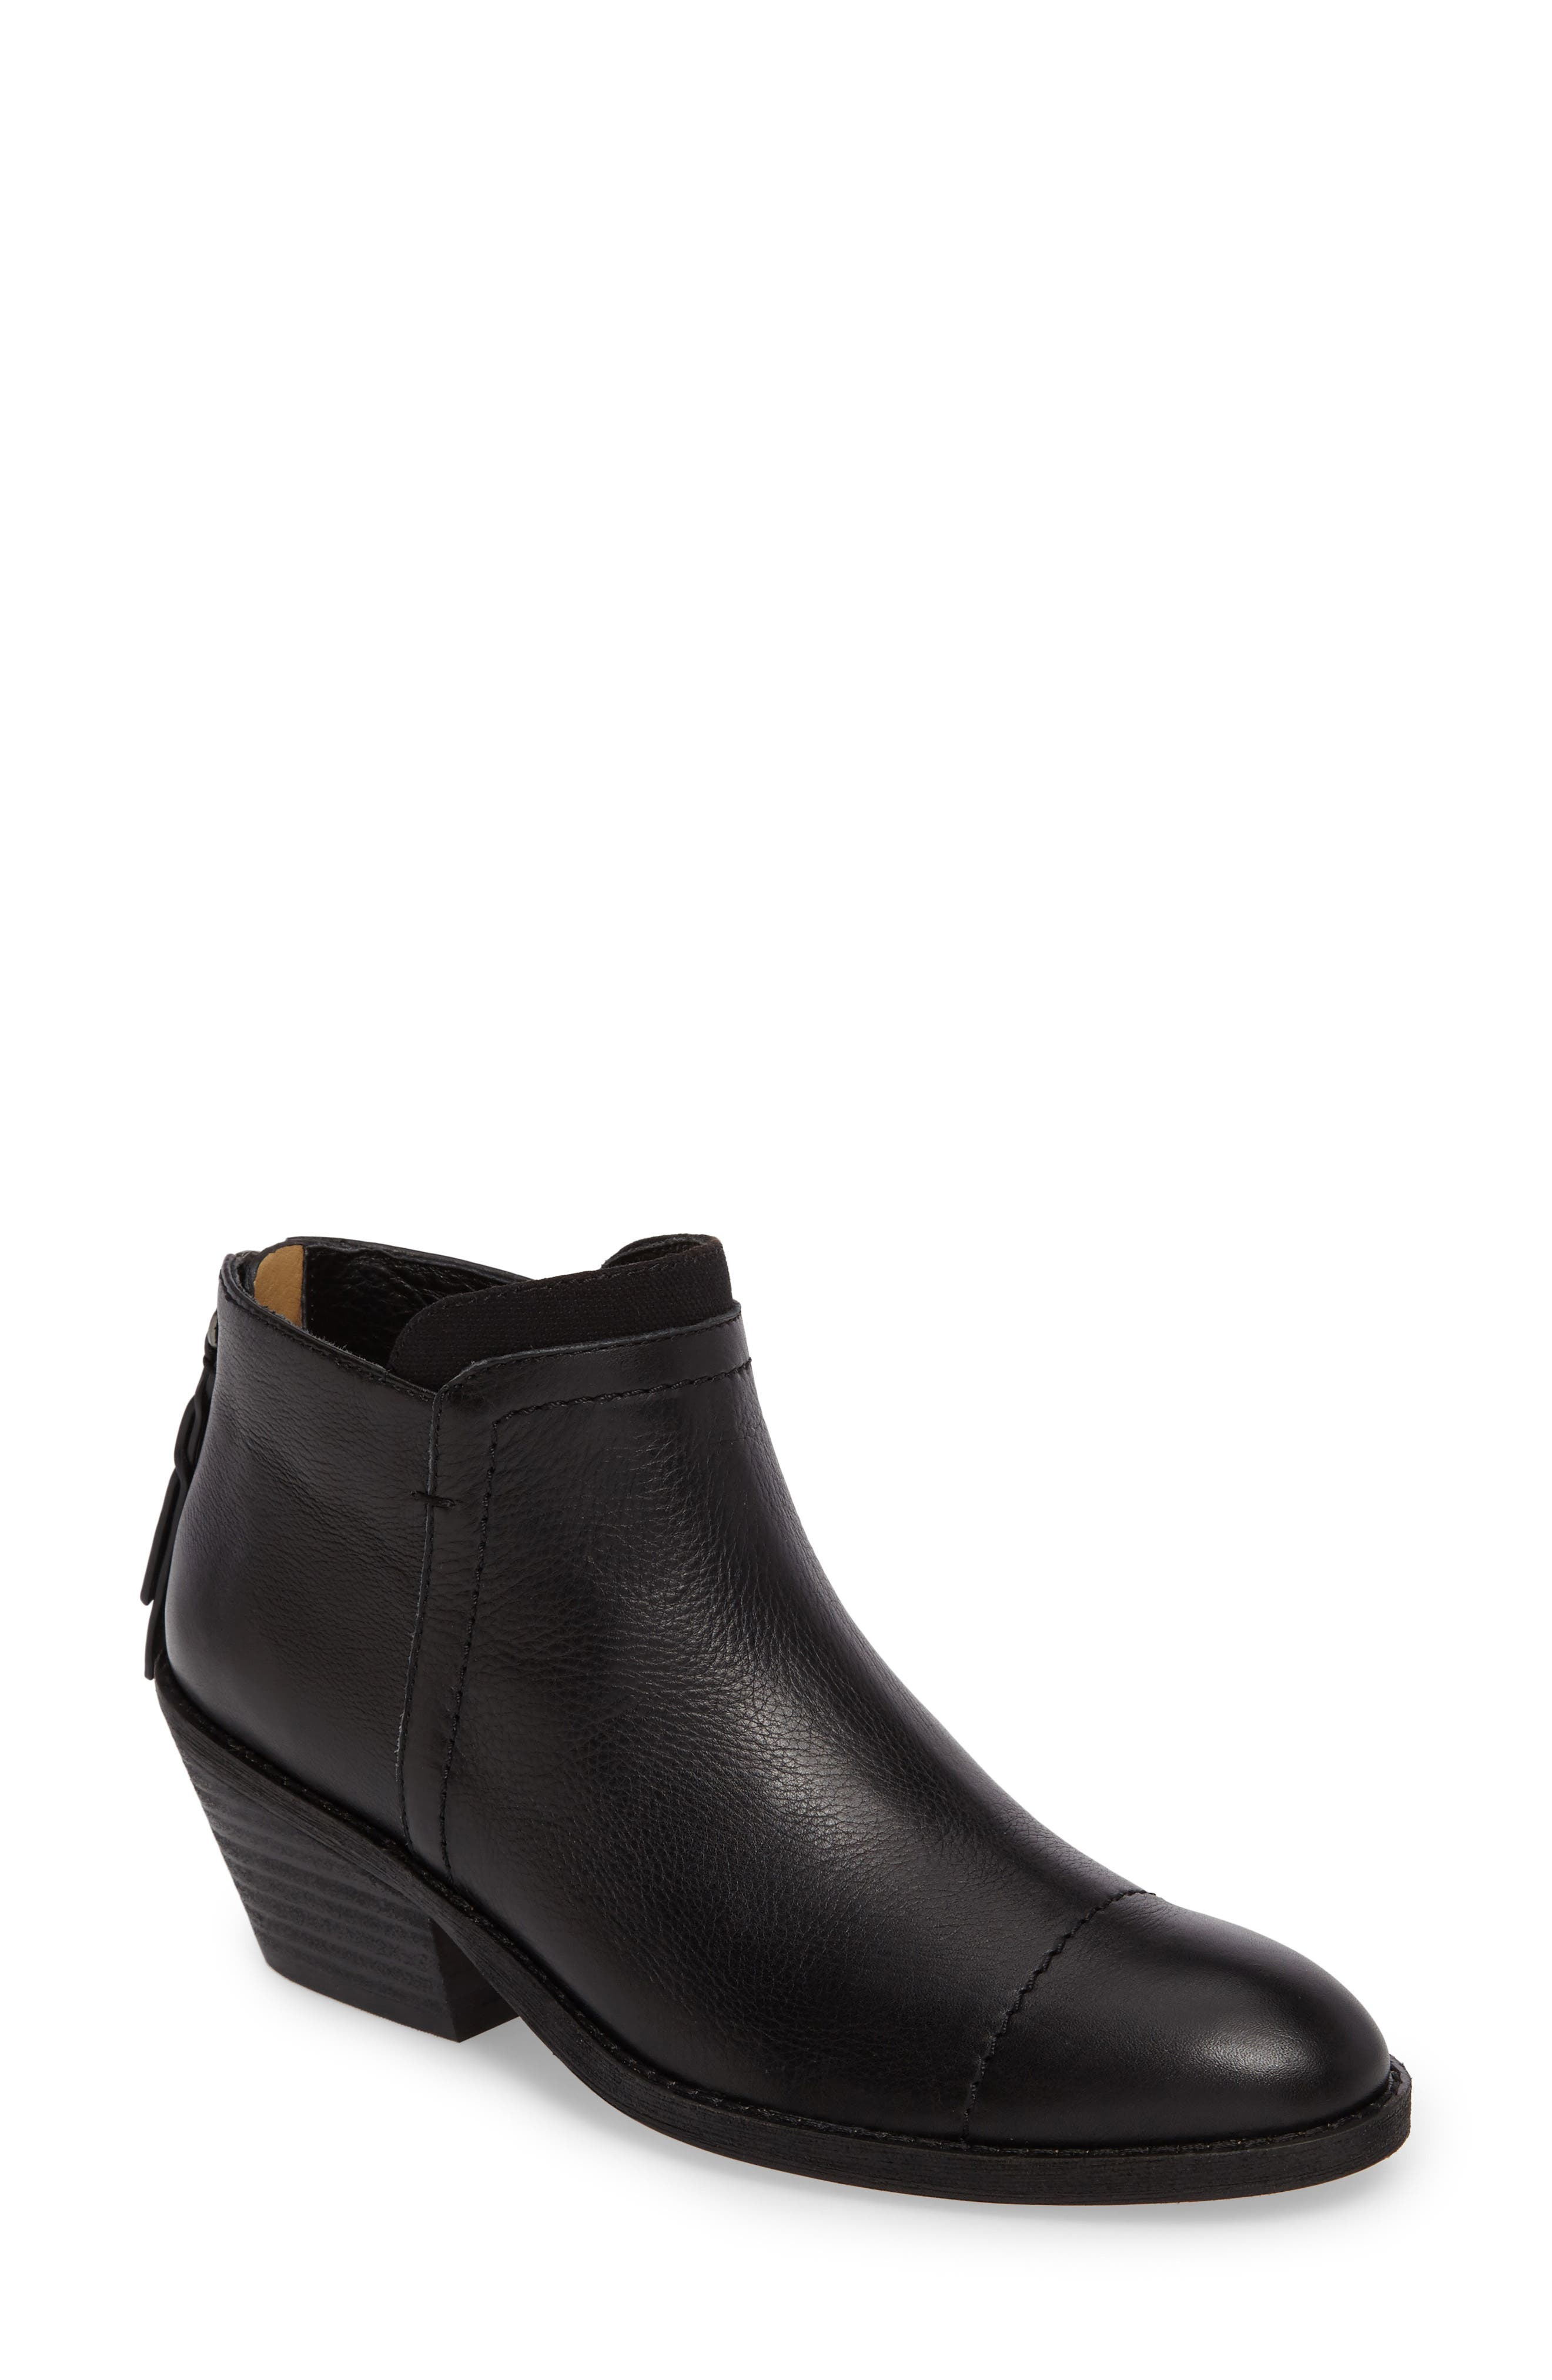 Dale II Bootie,                         Main,                         color, Black Leather